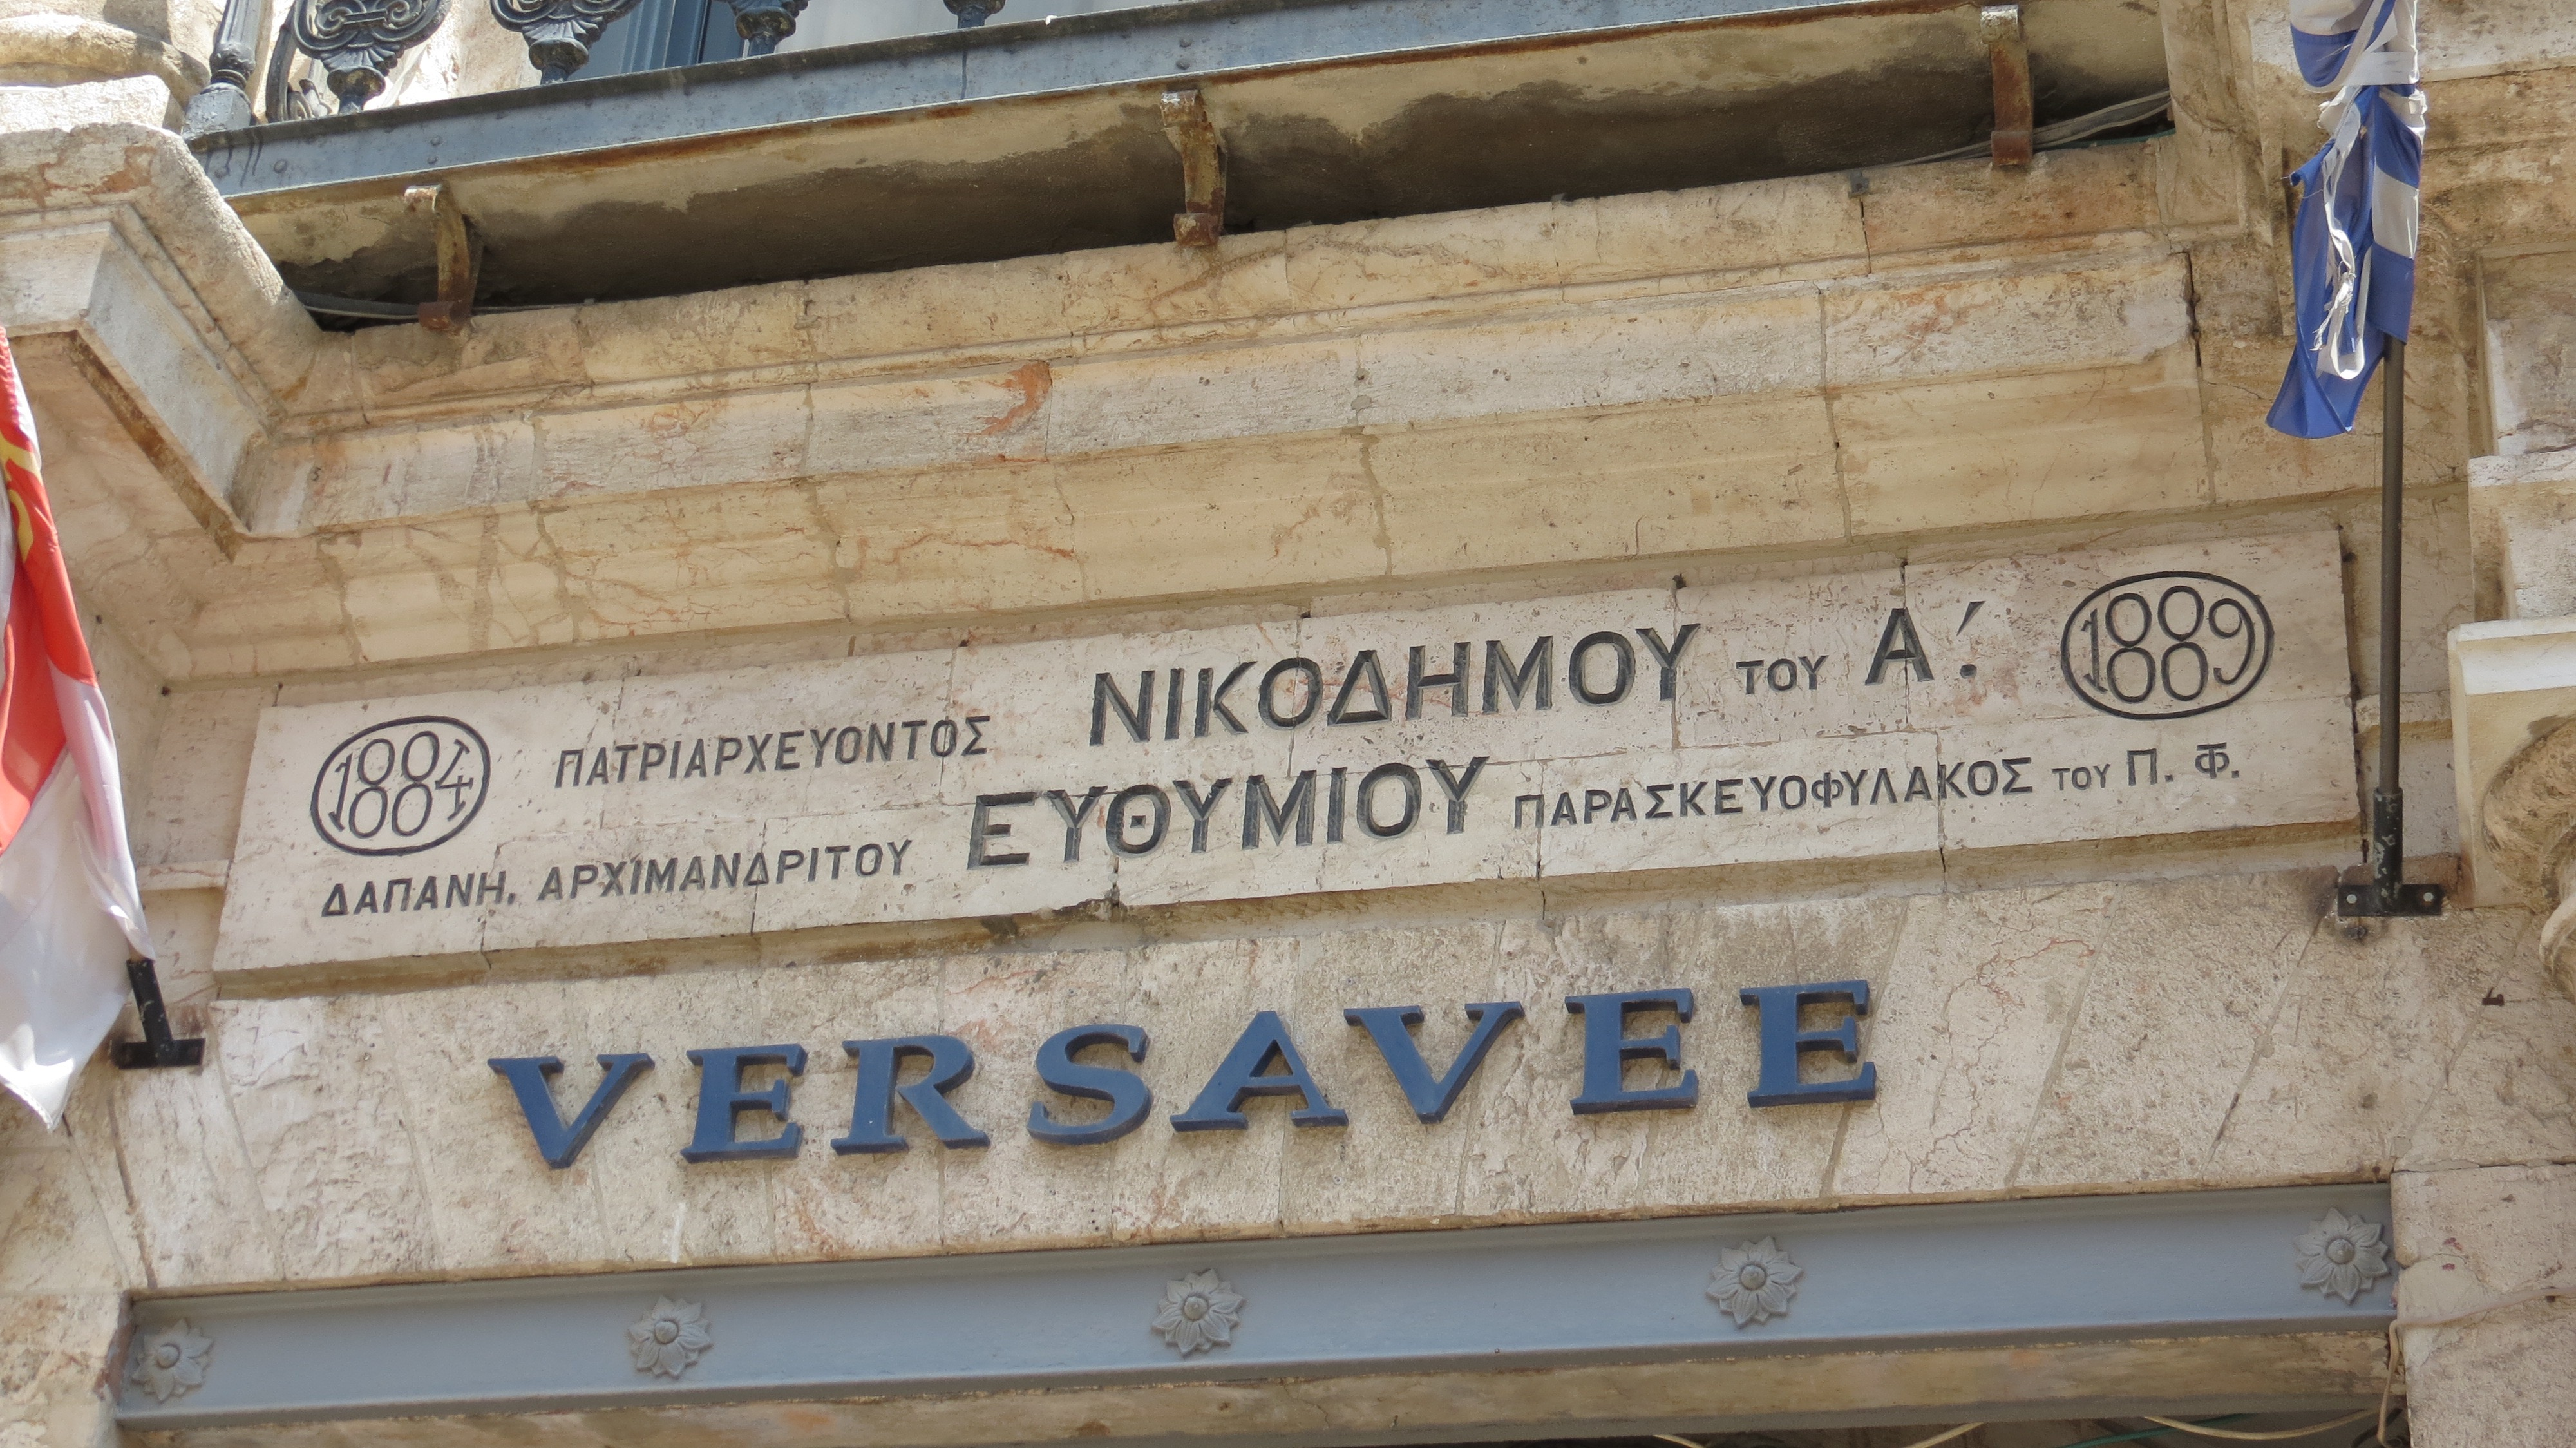 Versavee Historical building (part of the Greek Orthodox Patriarchate)